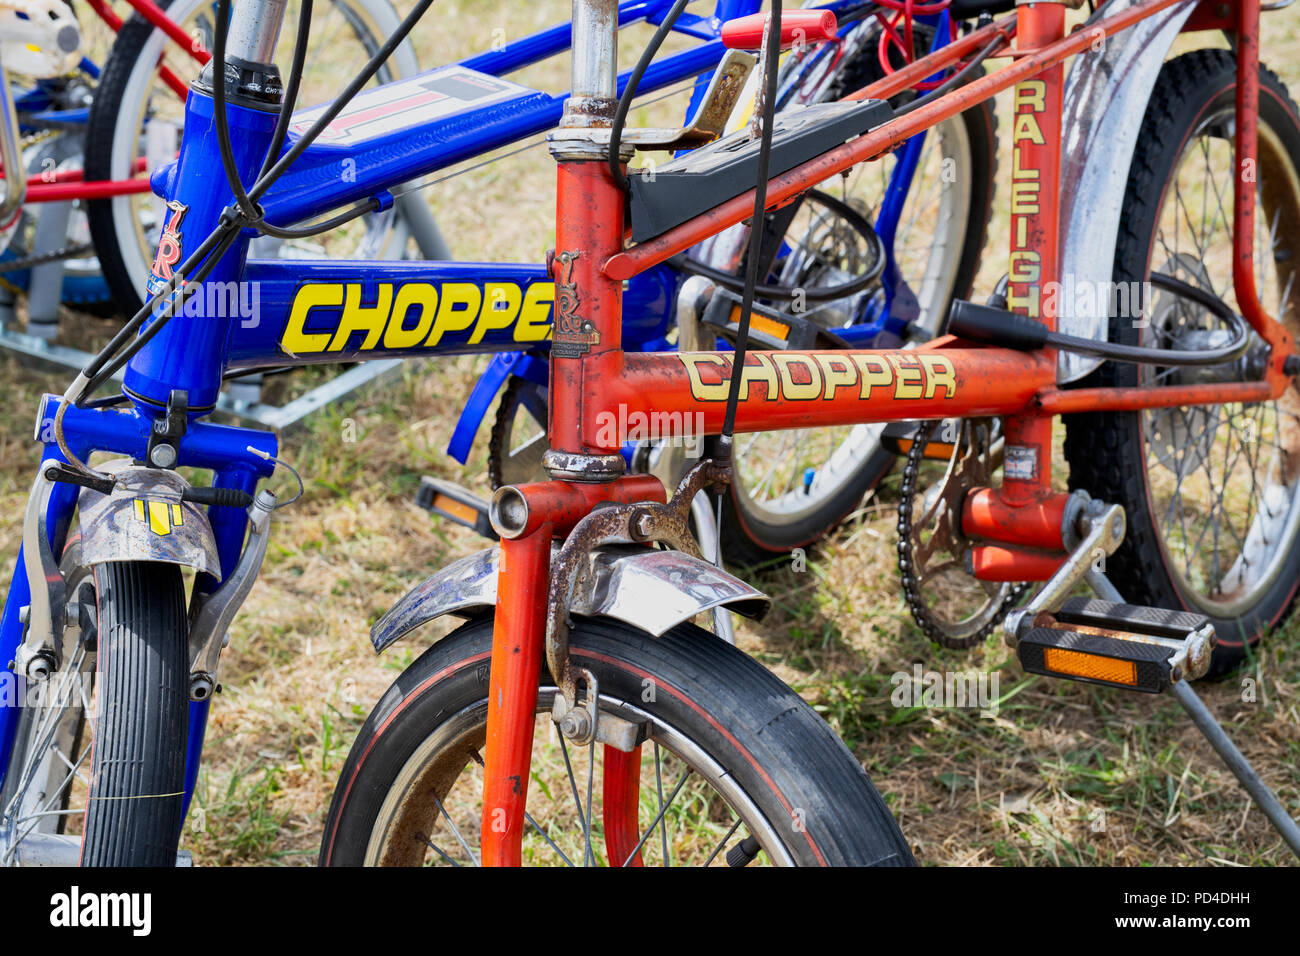 Chopper Bicycle Stock Photos & Chopper Bicycle Stock Images - Alamy